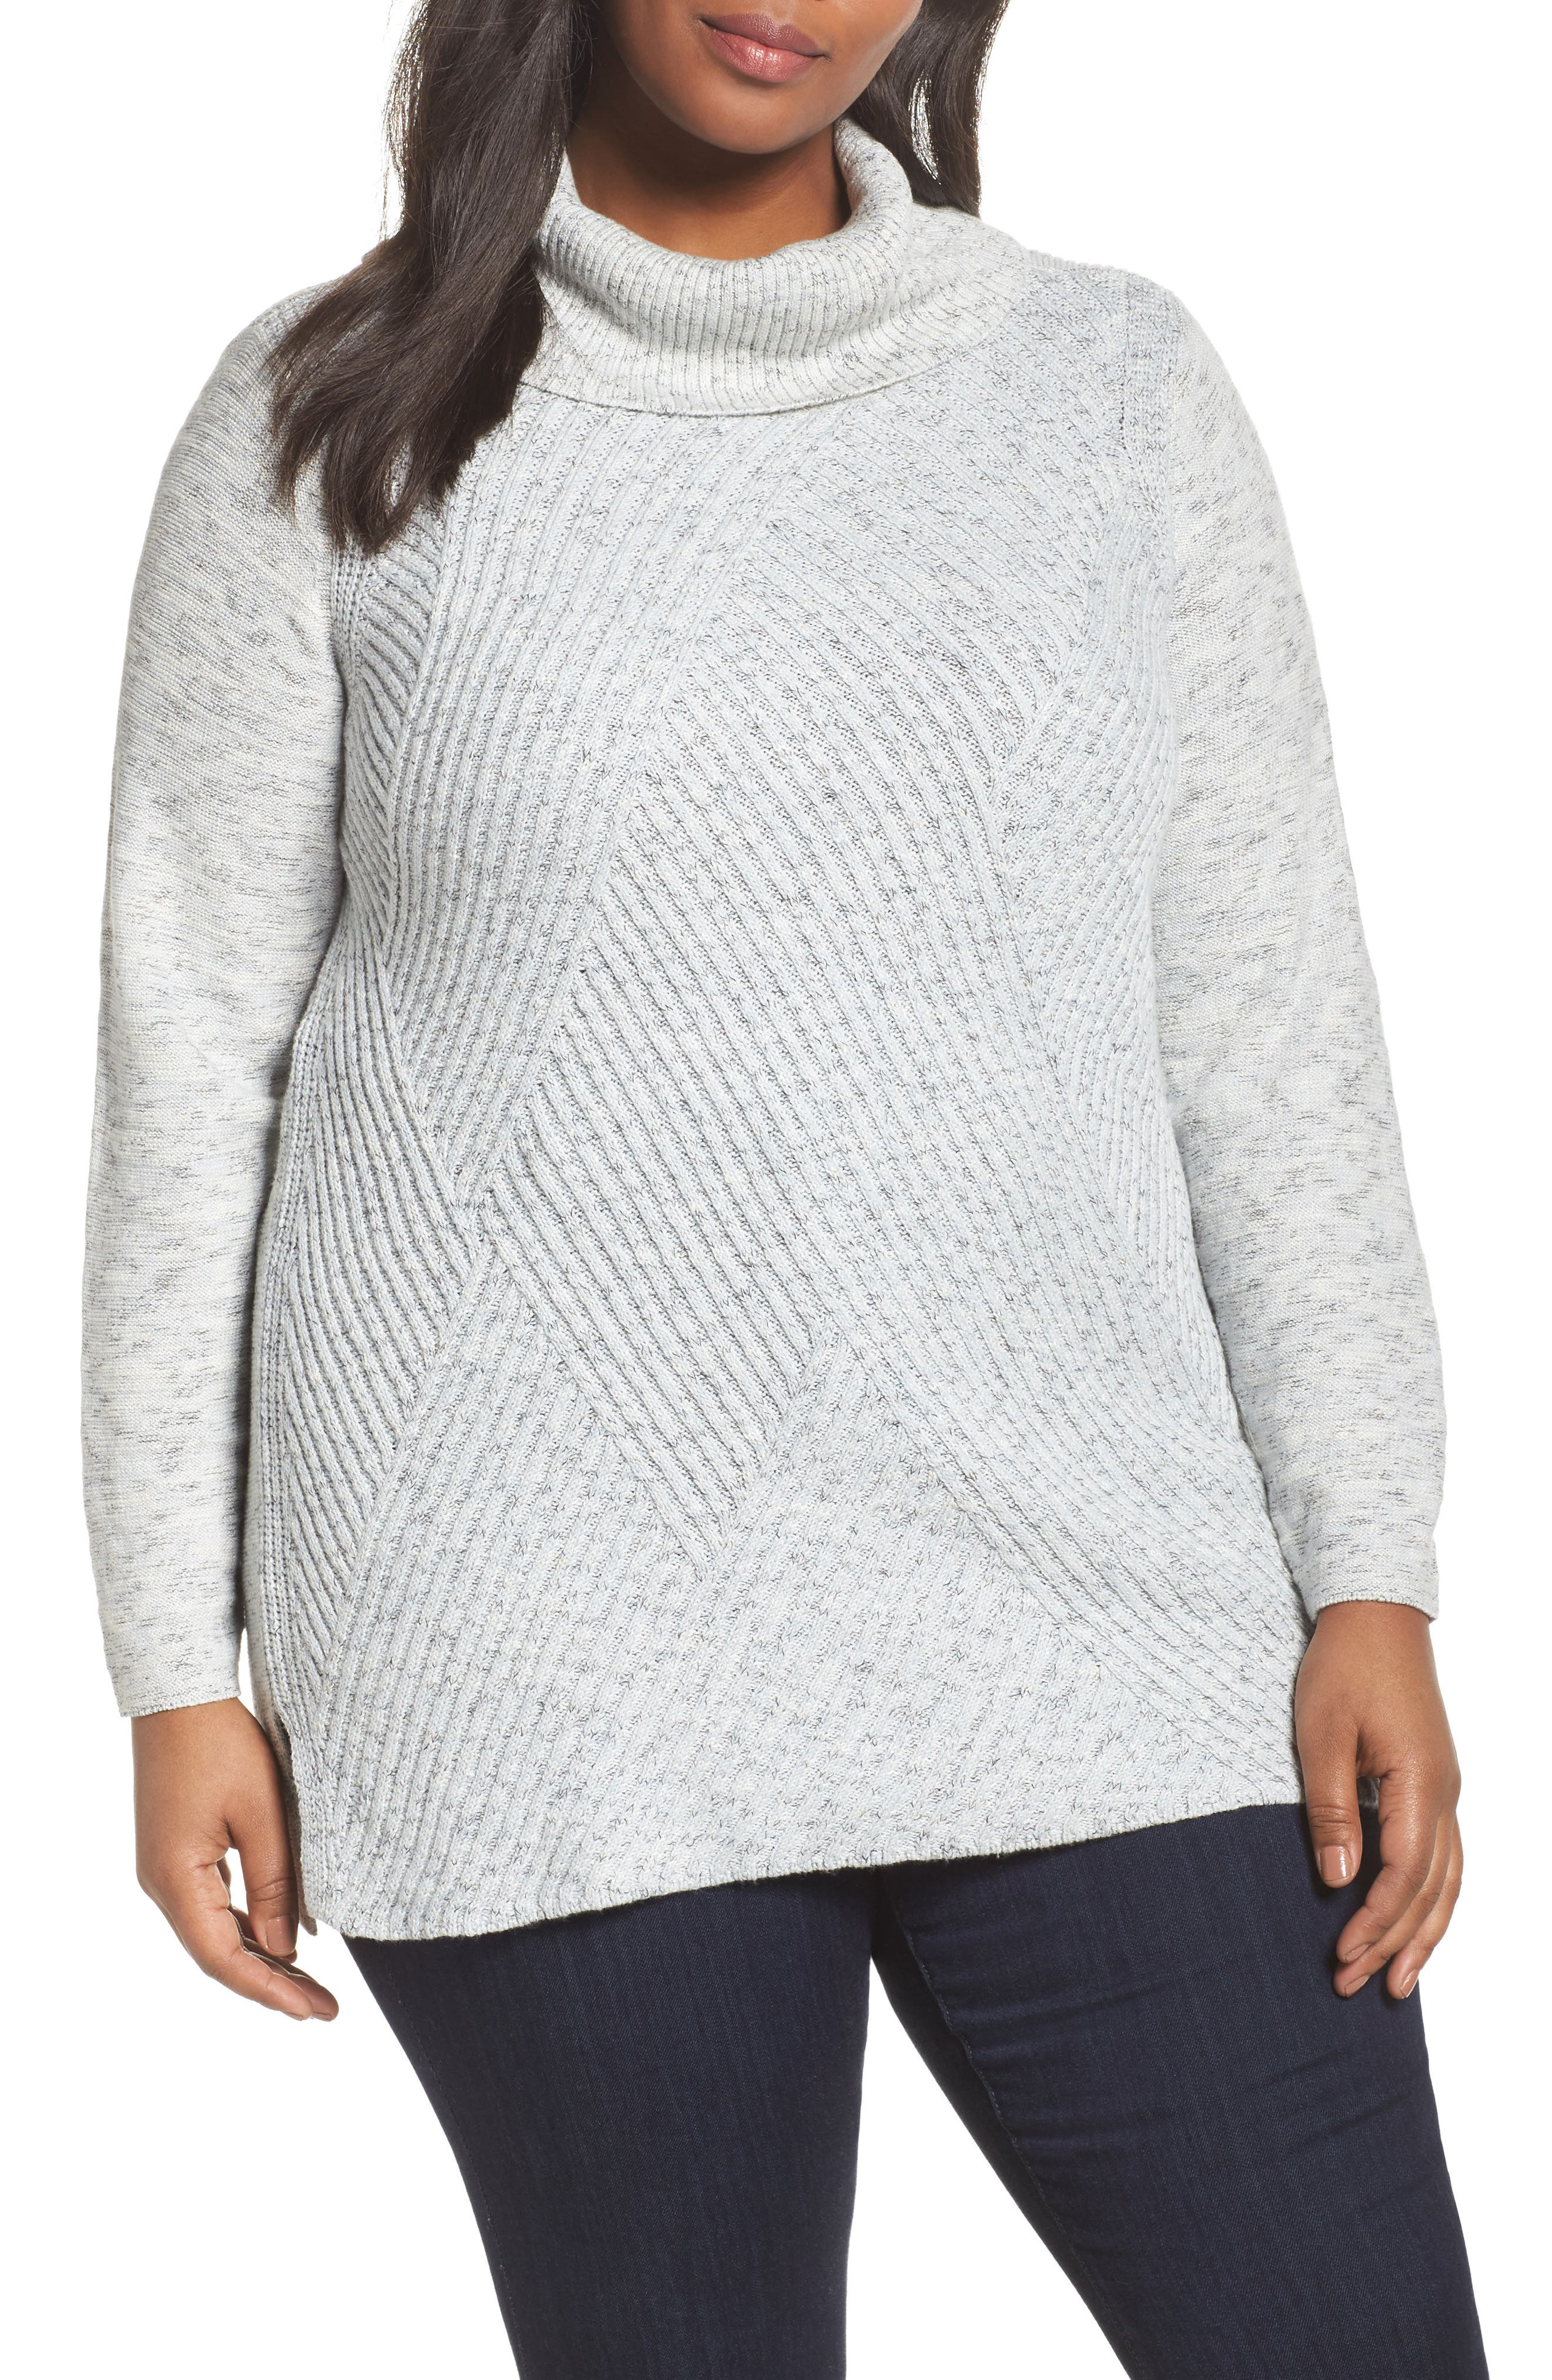 North Star Turtleneck Tunic,                             Main thumbnail 1, color,